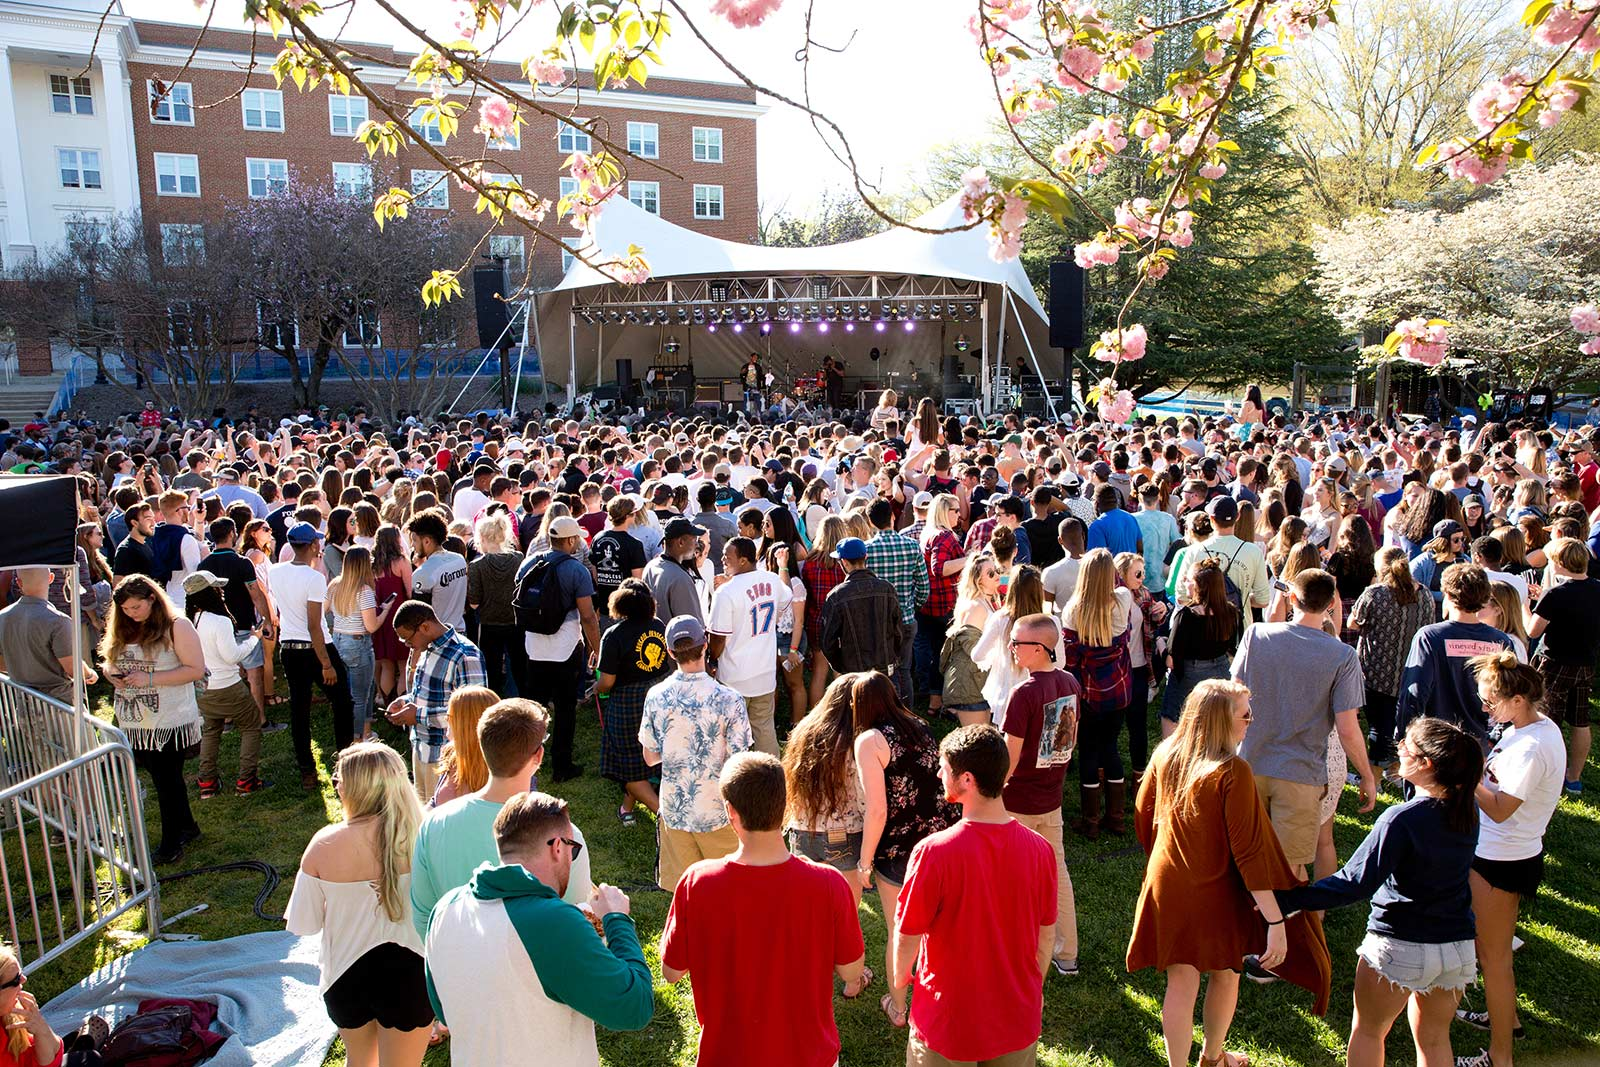 Stubbs Lawn, where students gather for entertainment and fun, is home to activities during the two big weekends each year—Oktoberfest and Spring Weekend.